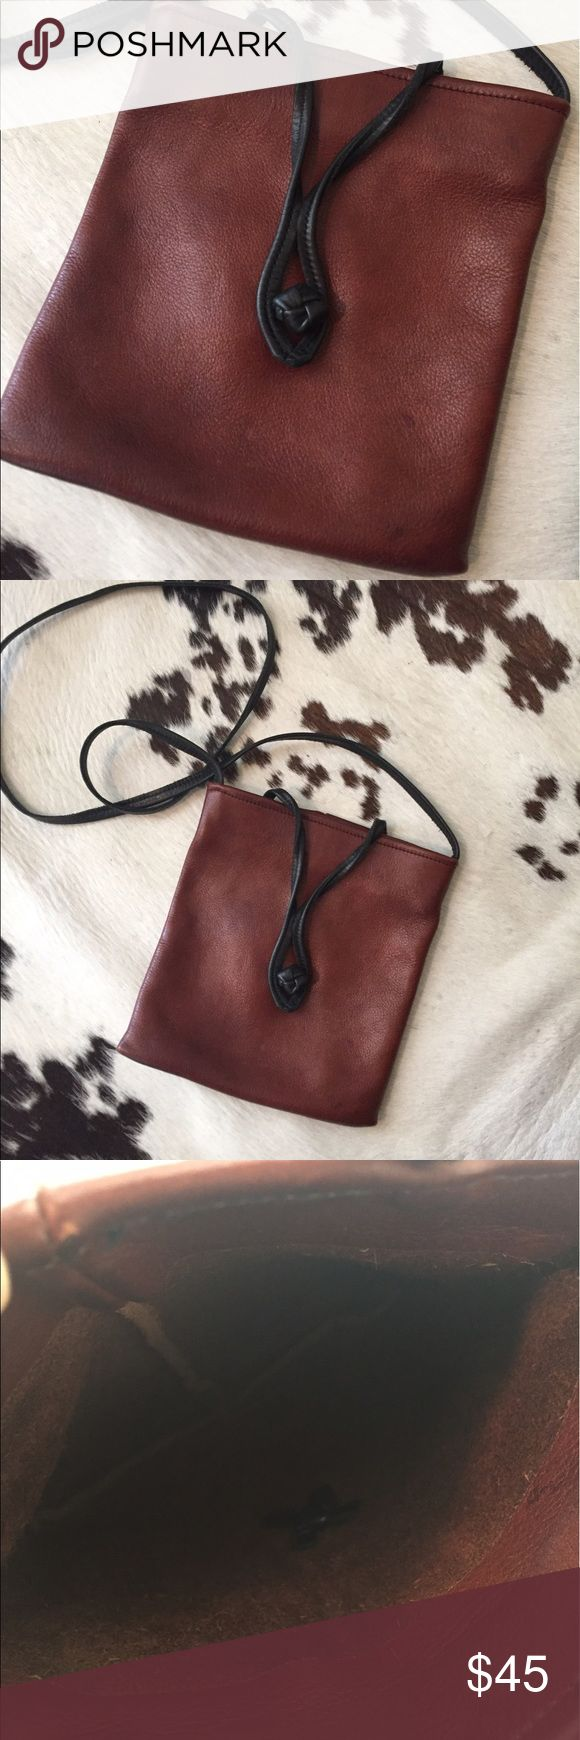 "Buttery leather festival bag This vintage bag is 7""x7.5"" it's the softest buttery brown leather with a black strap and closure detail. Strap drop measures 21"" Bags Crossbody Bags"